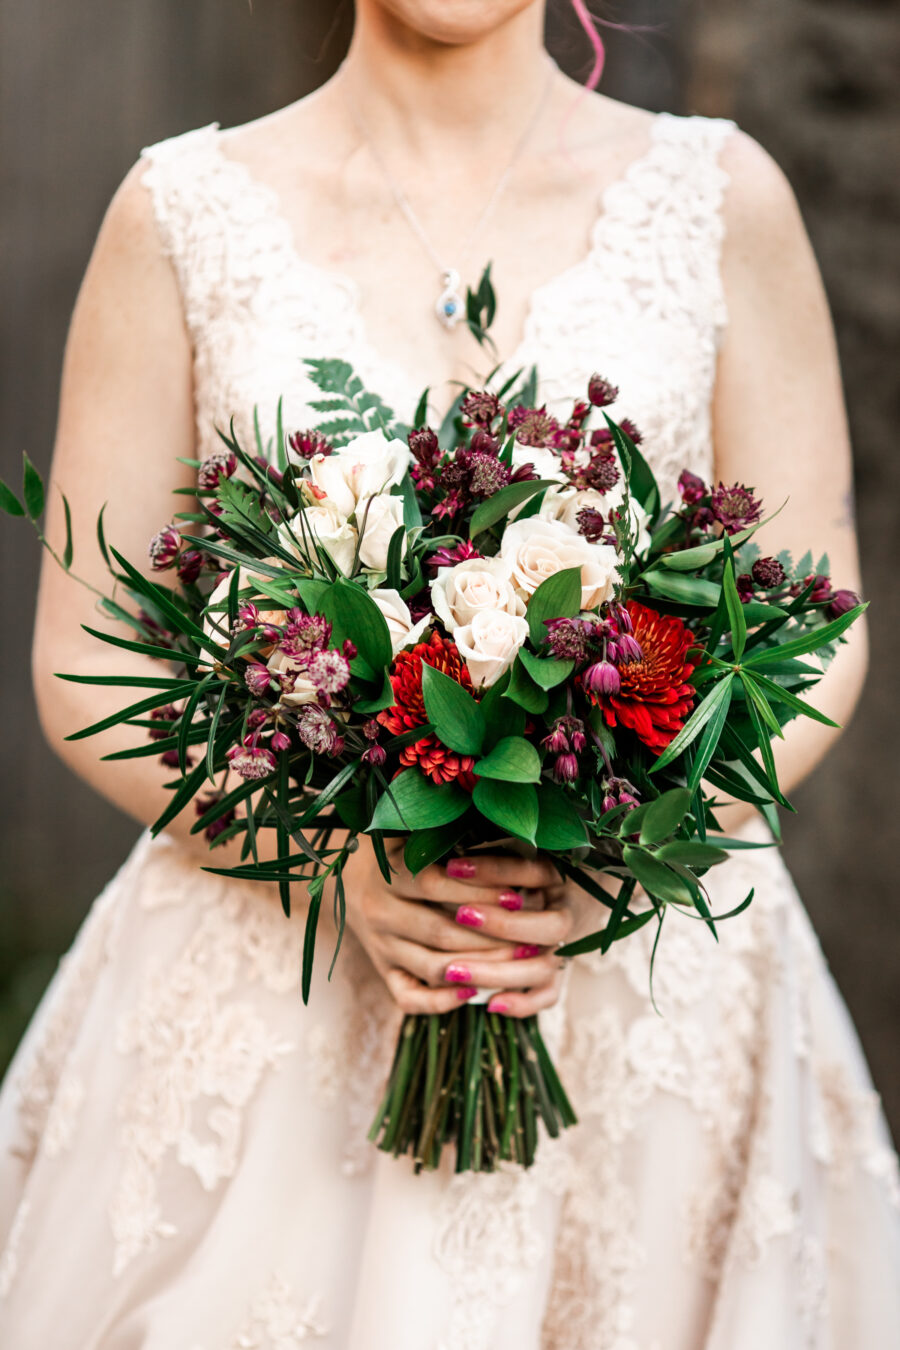 Red and white wintery wedding bouquet: Nashville Wish Upon a Wedding captured by Nyk + Cali Photography featured on Nashville Bride Guide